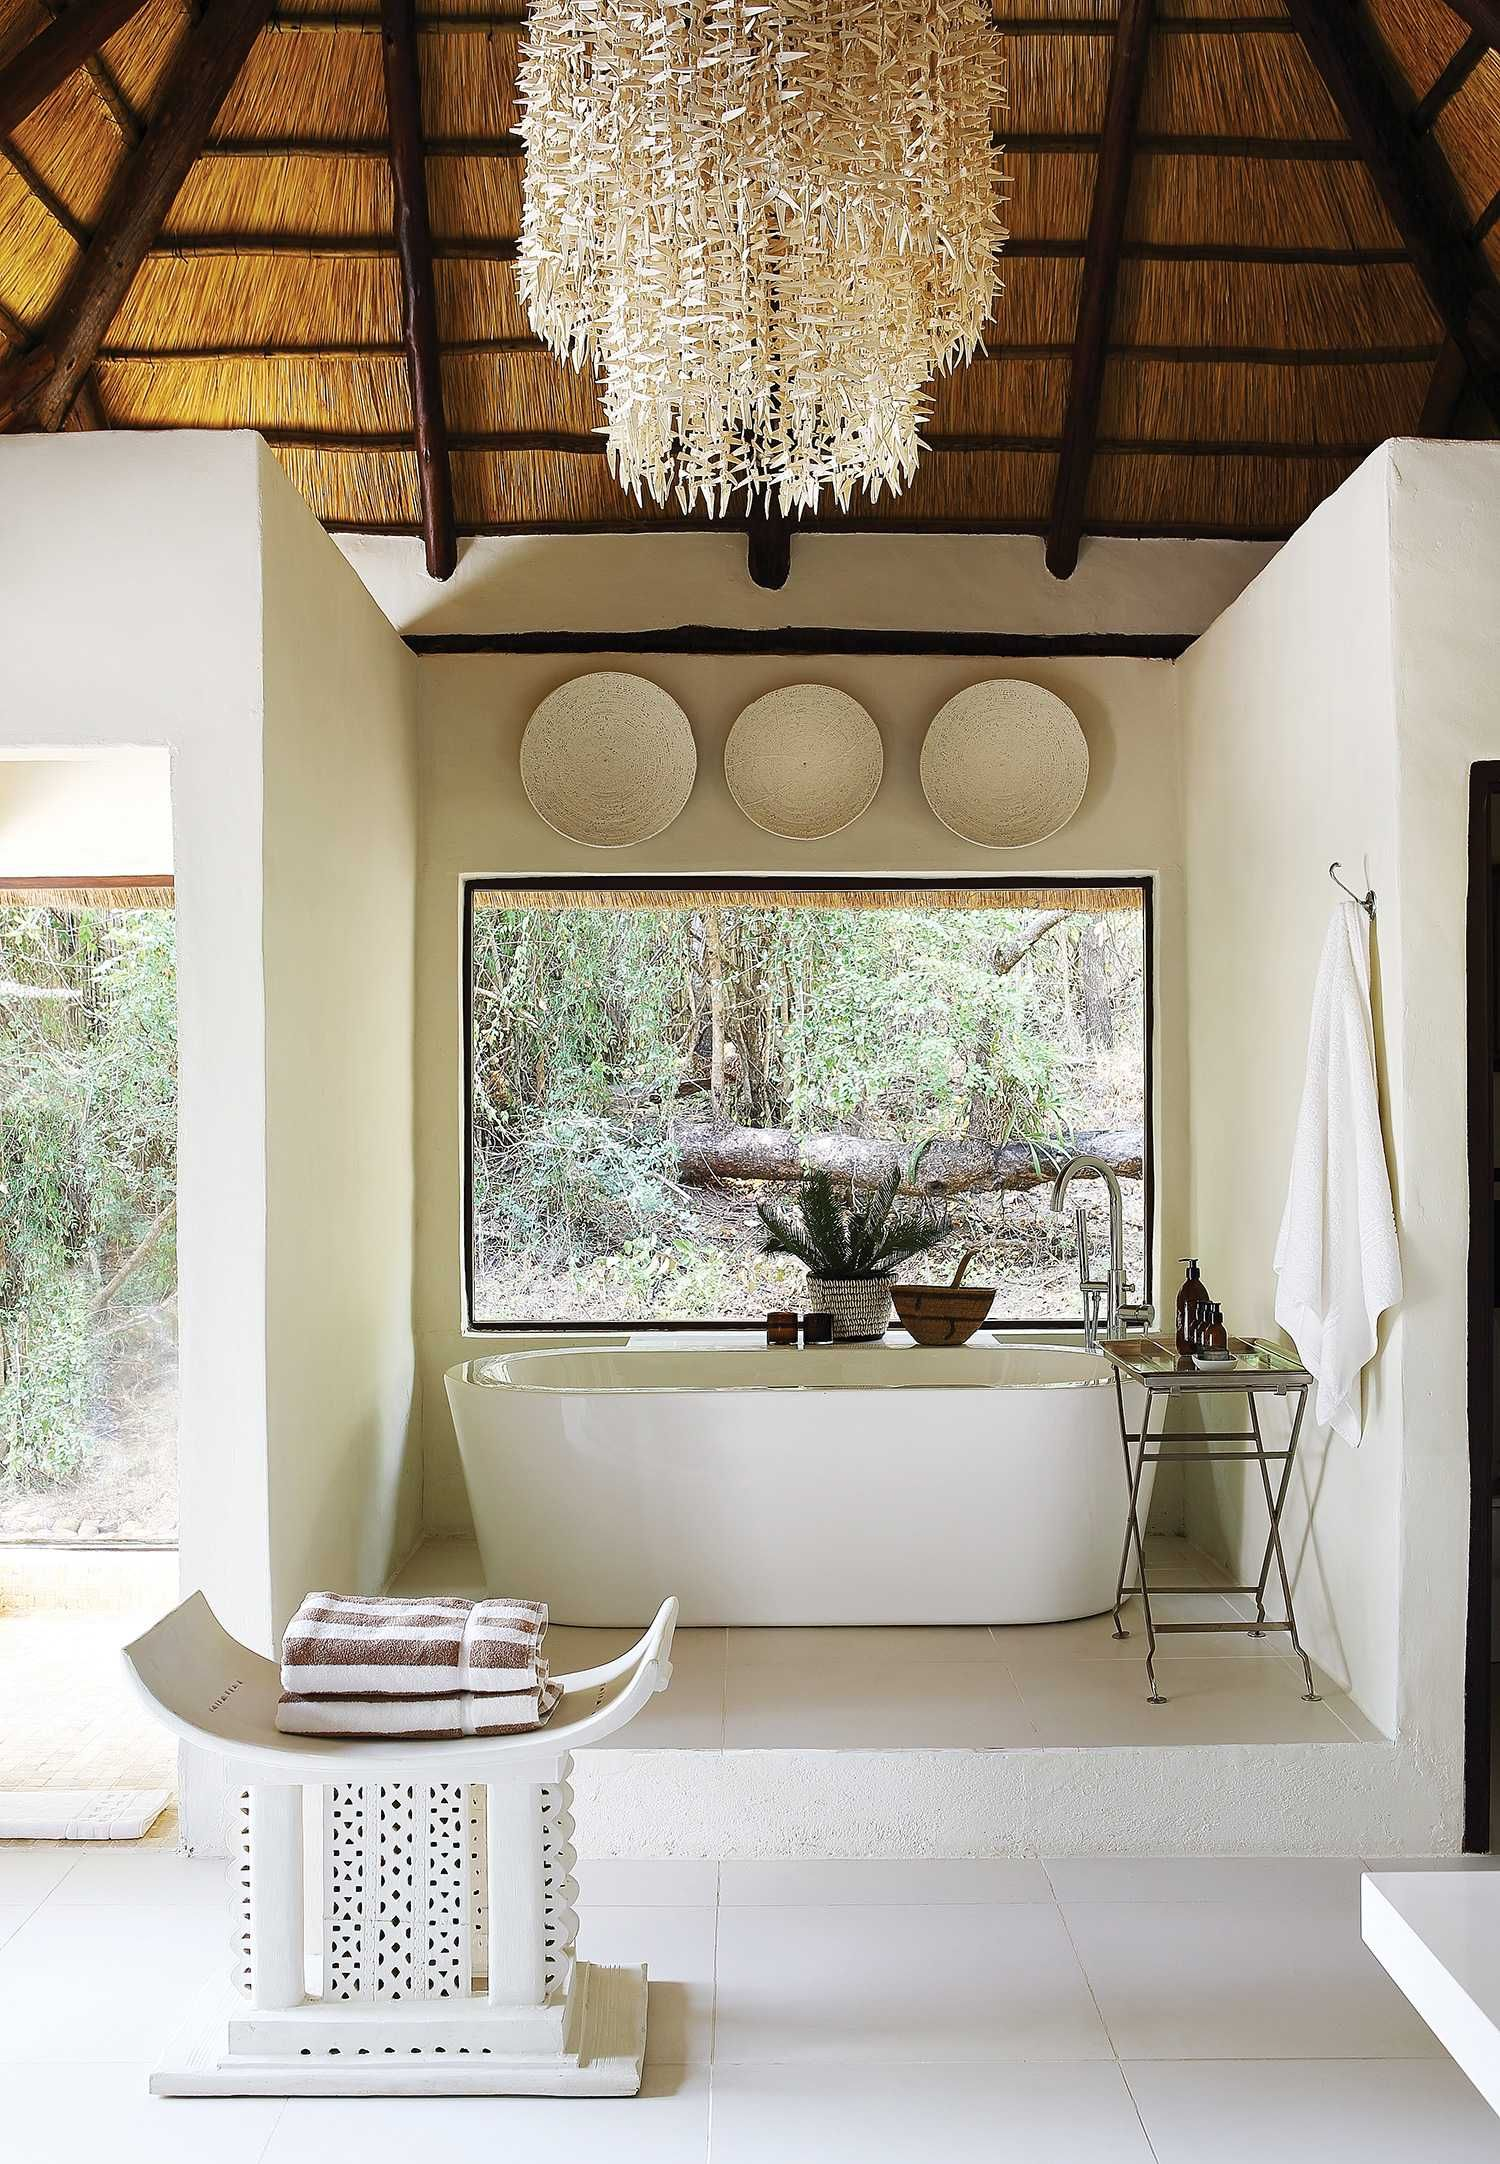 Carrelage Salle De Bain Imitation Parquet ~ Tree Camp Londolozi Londolozi Game Reserve Travel Pinterest